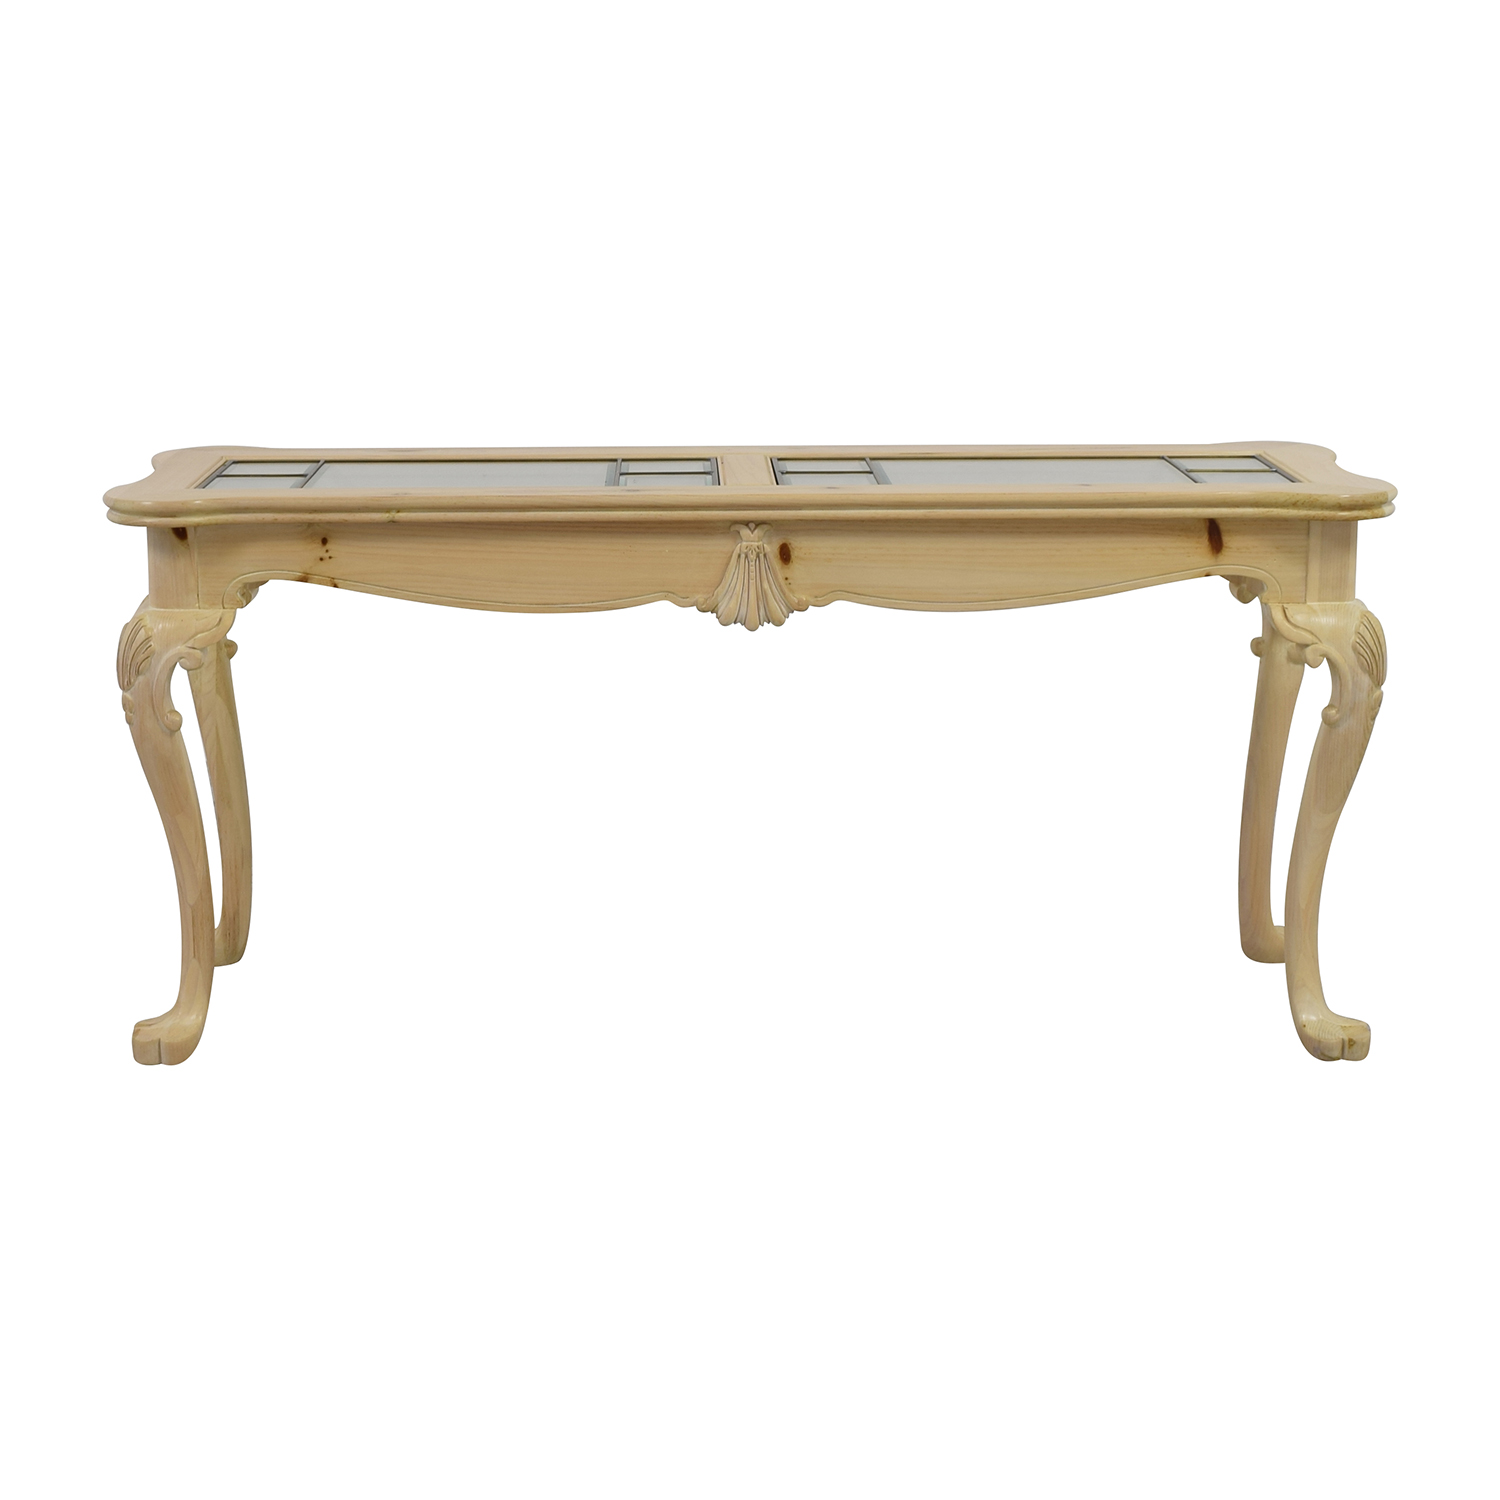 Buy Natural Wood Table Used Furniture On Sale